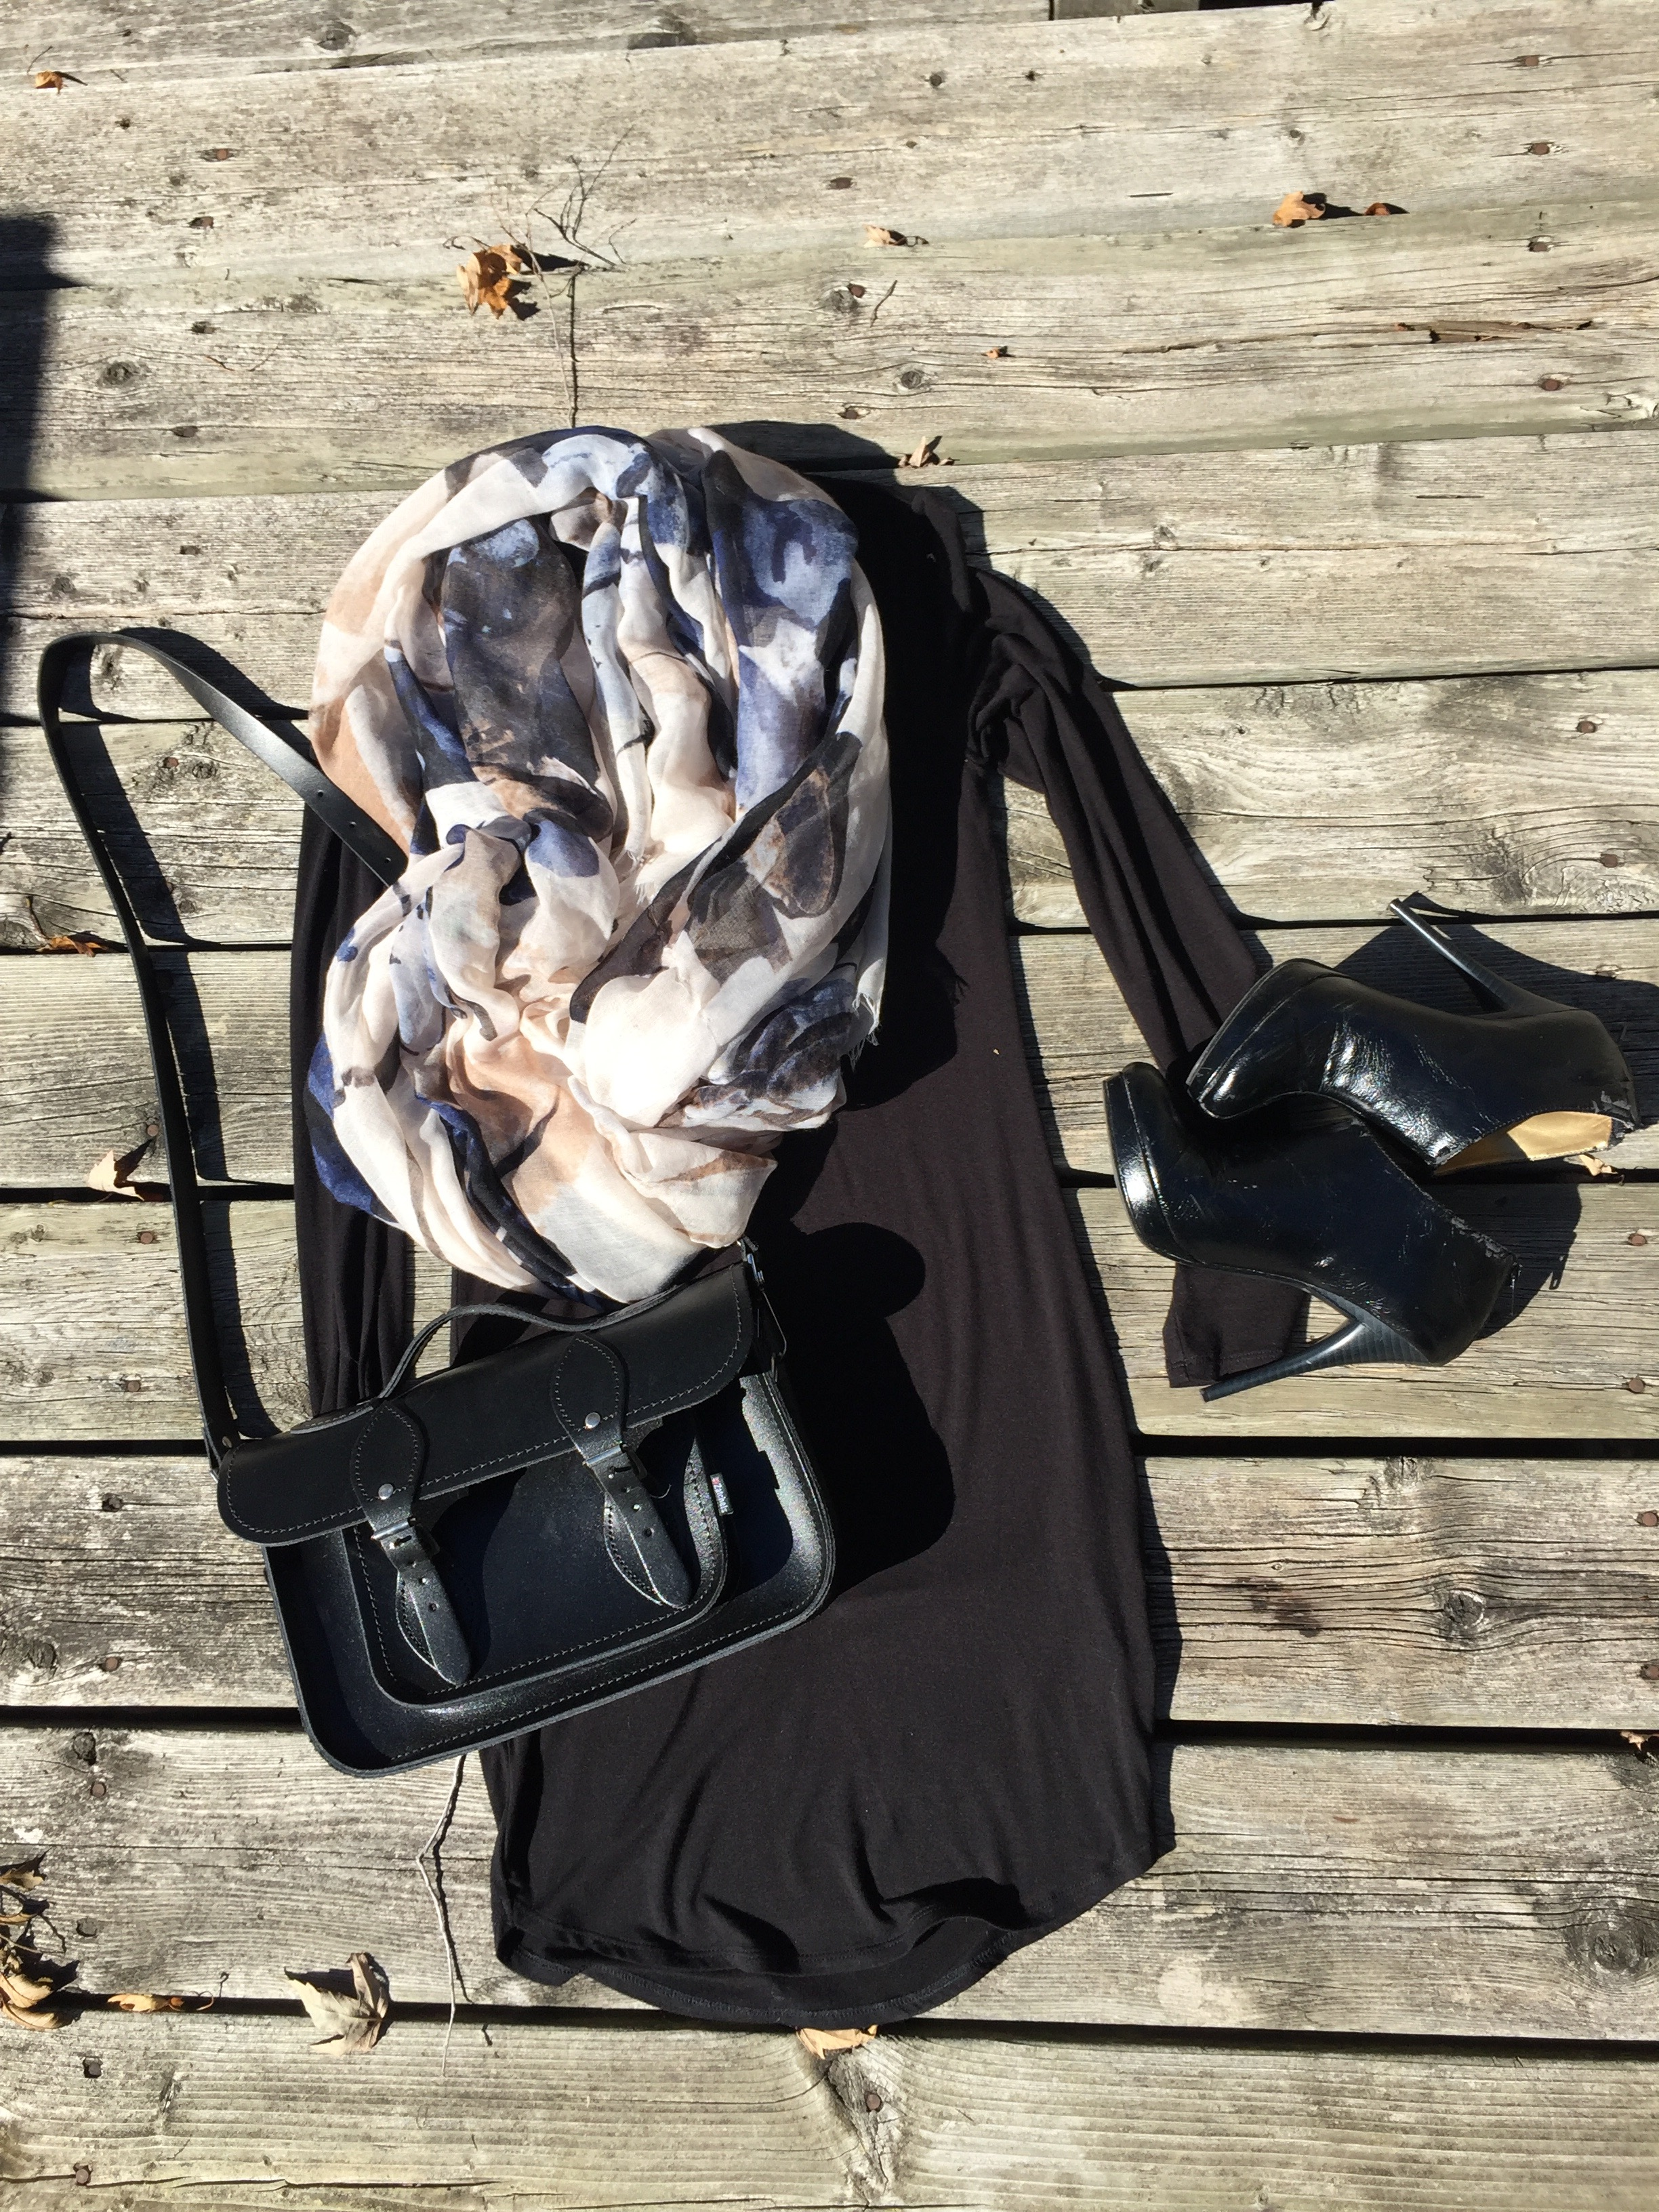 Black Long Sleeve Dress with black booties and messenger style hand bag